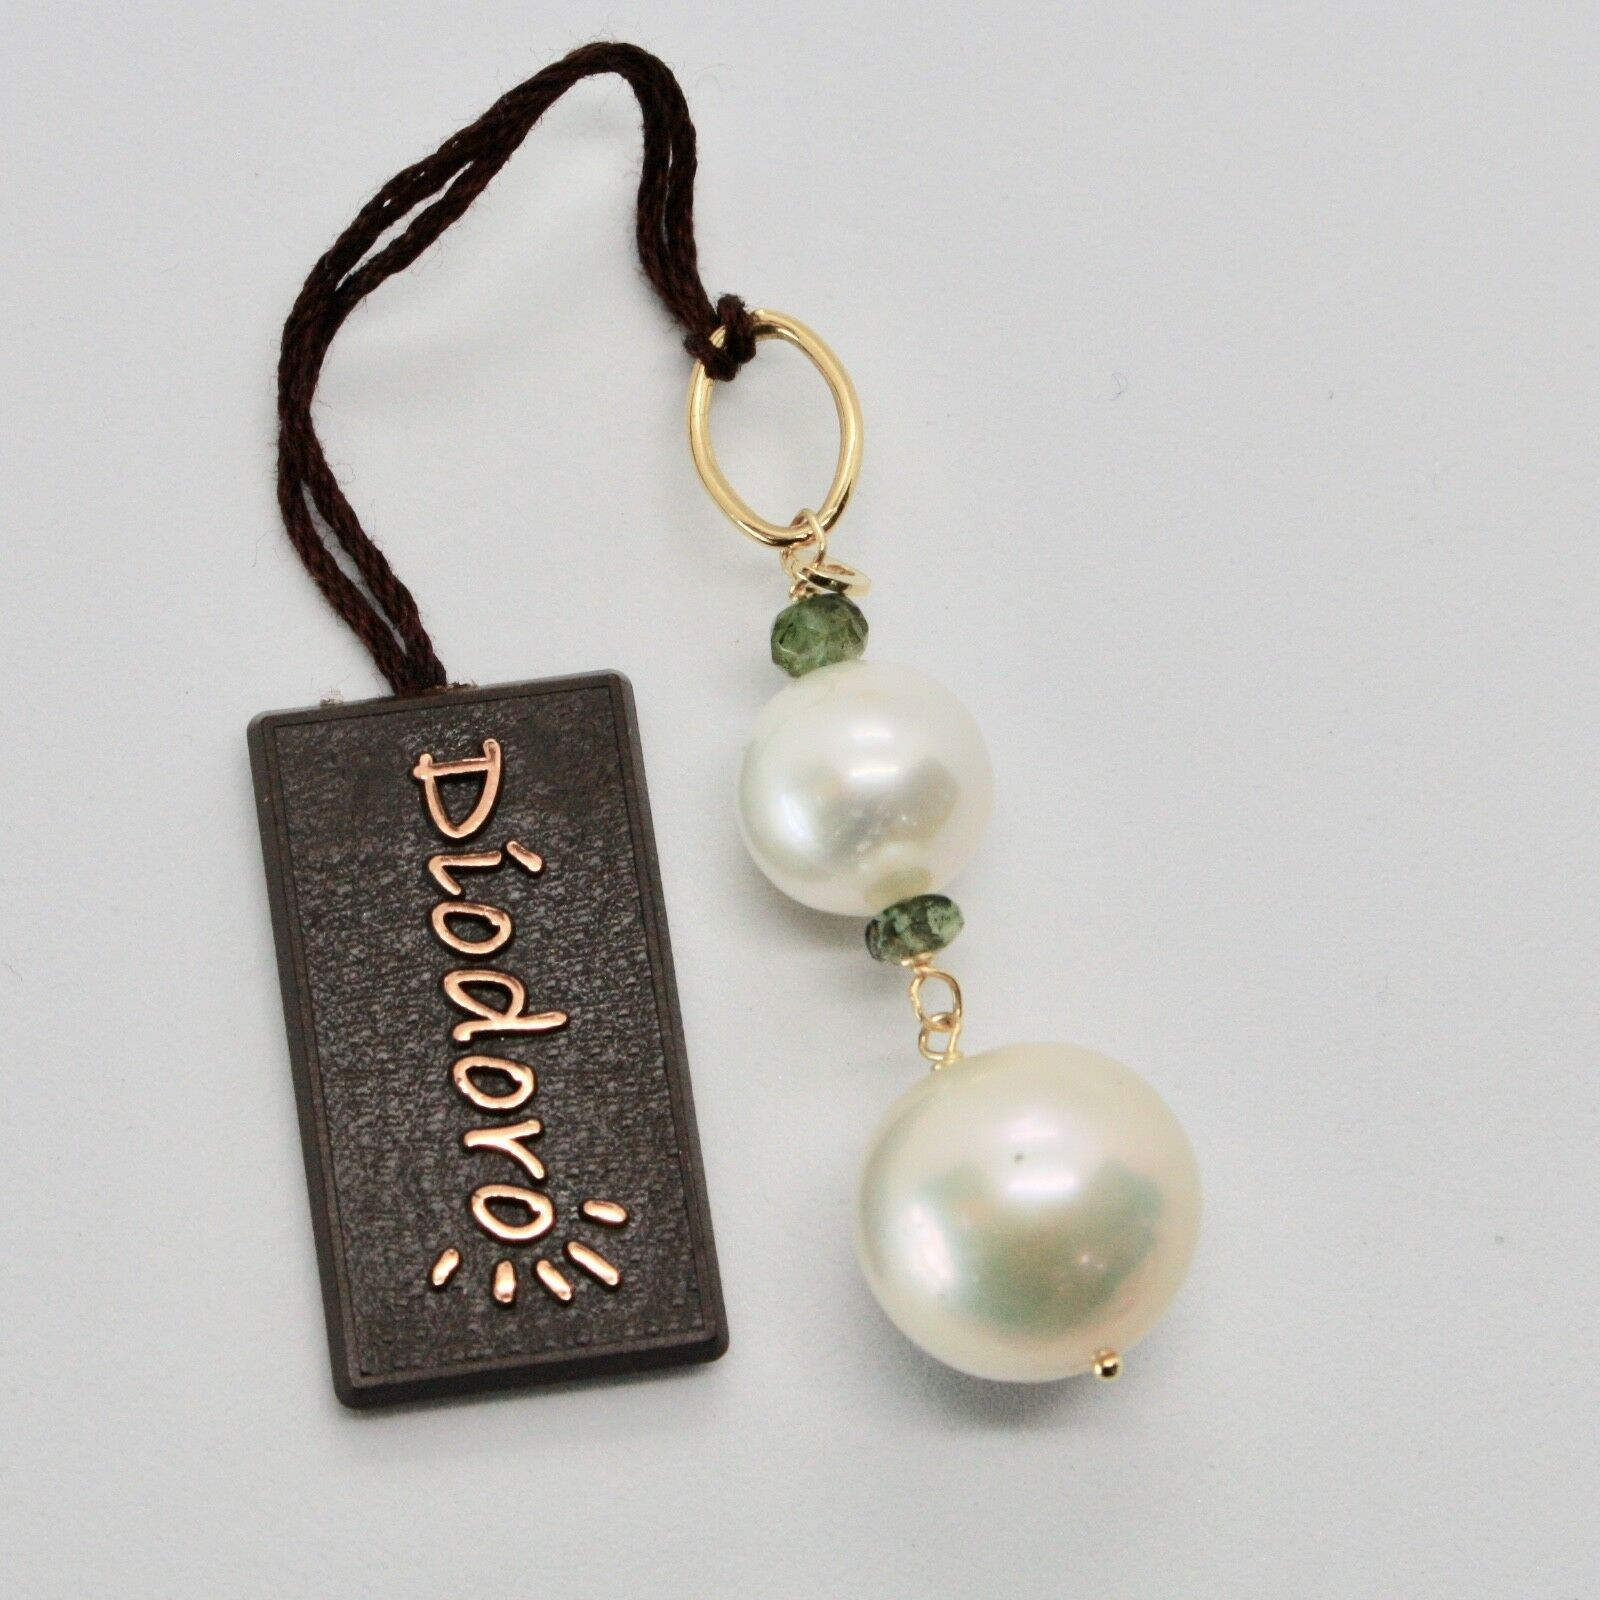 Charm 18k Yellow Gold with white pearls freshwater and Tourmaline Green